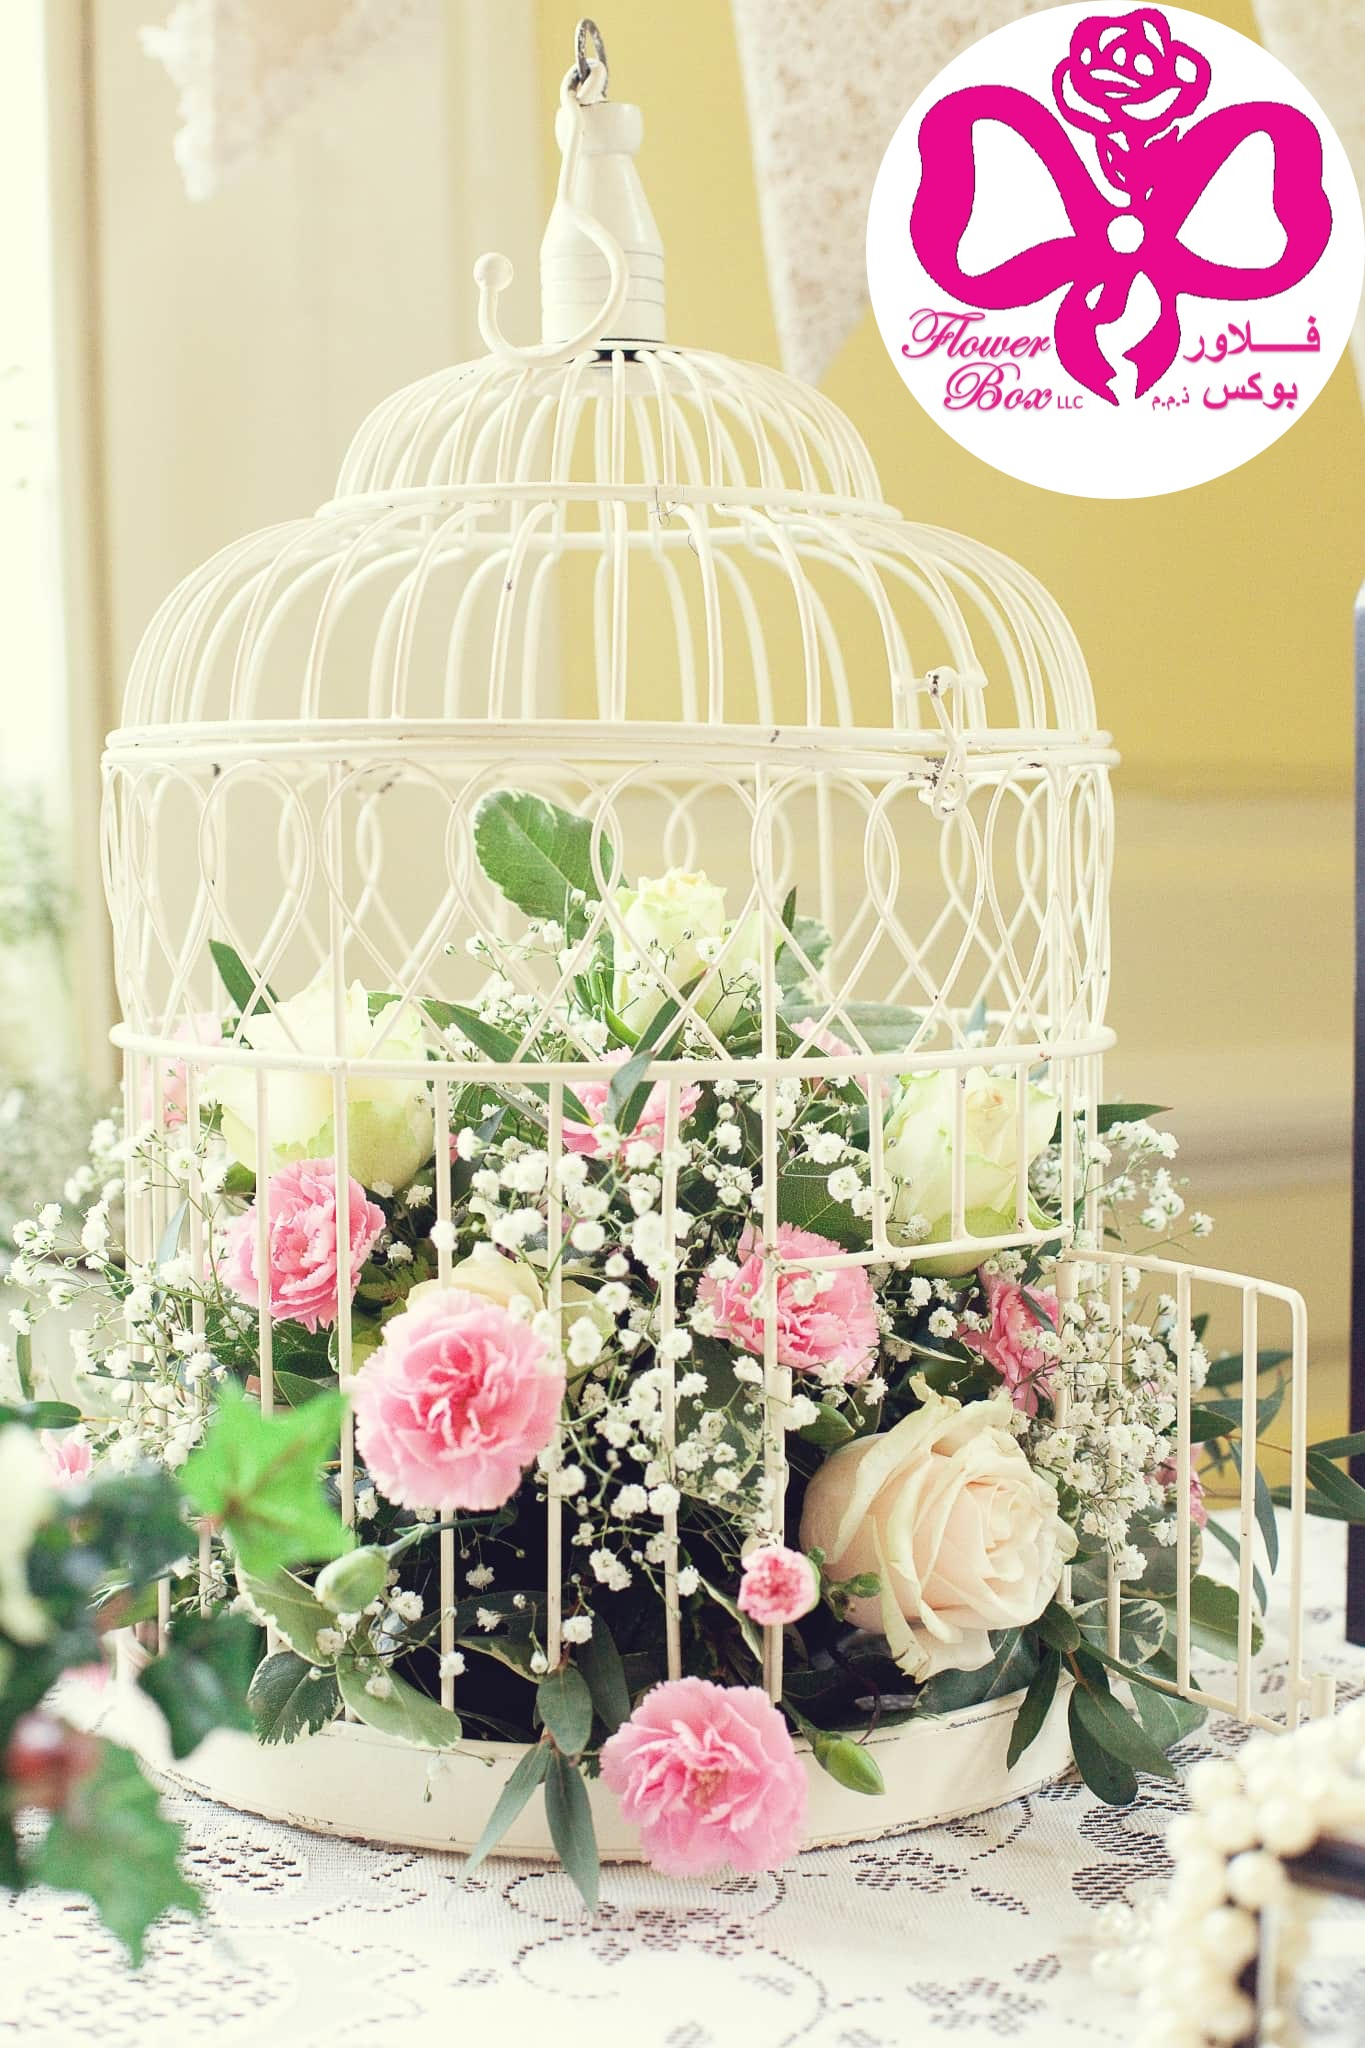 Bird Cage - With Flowers